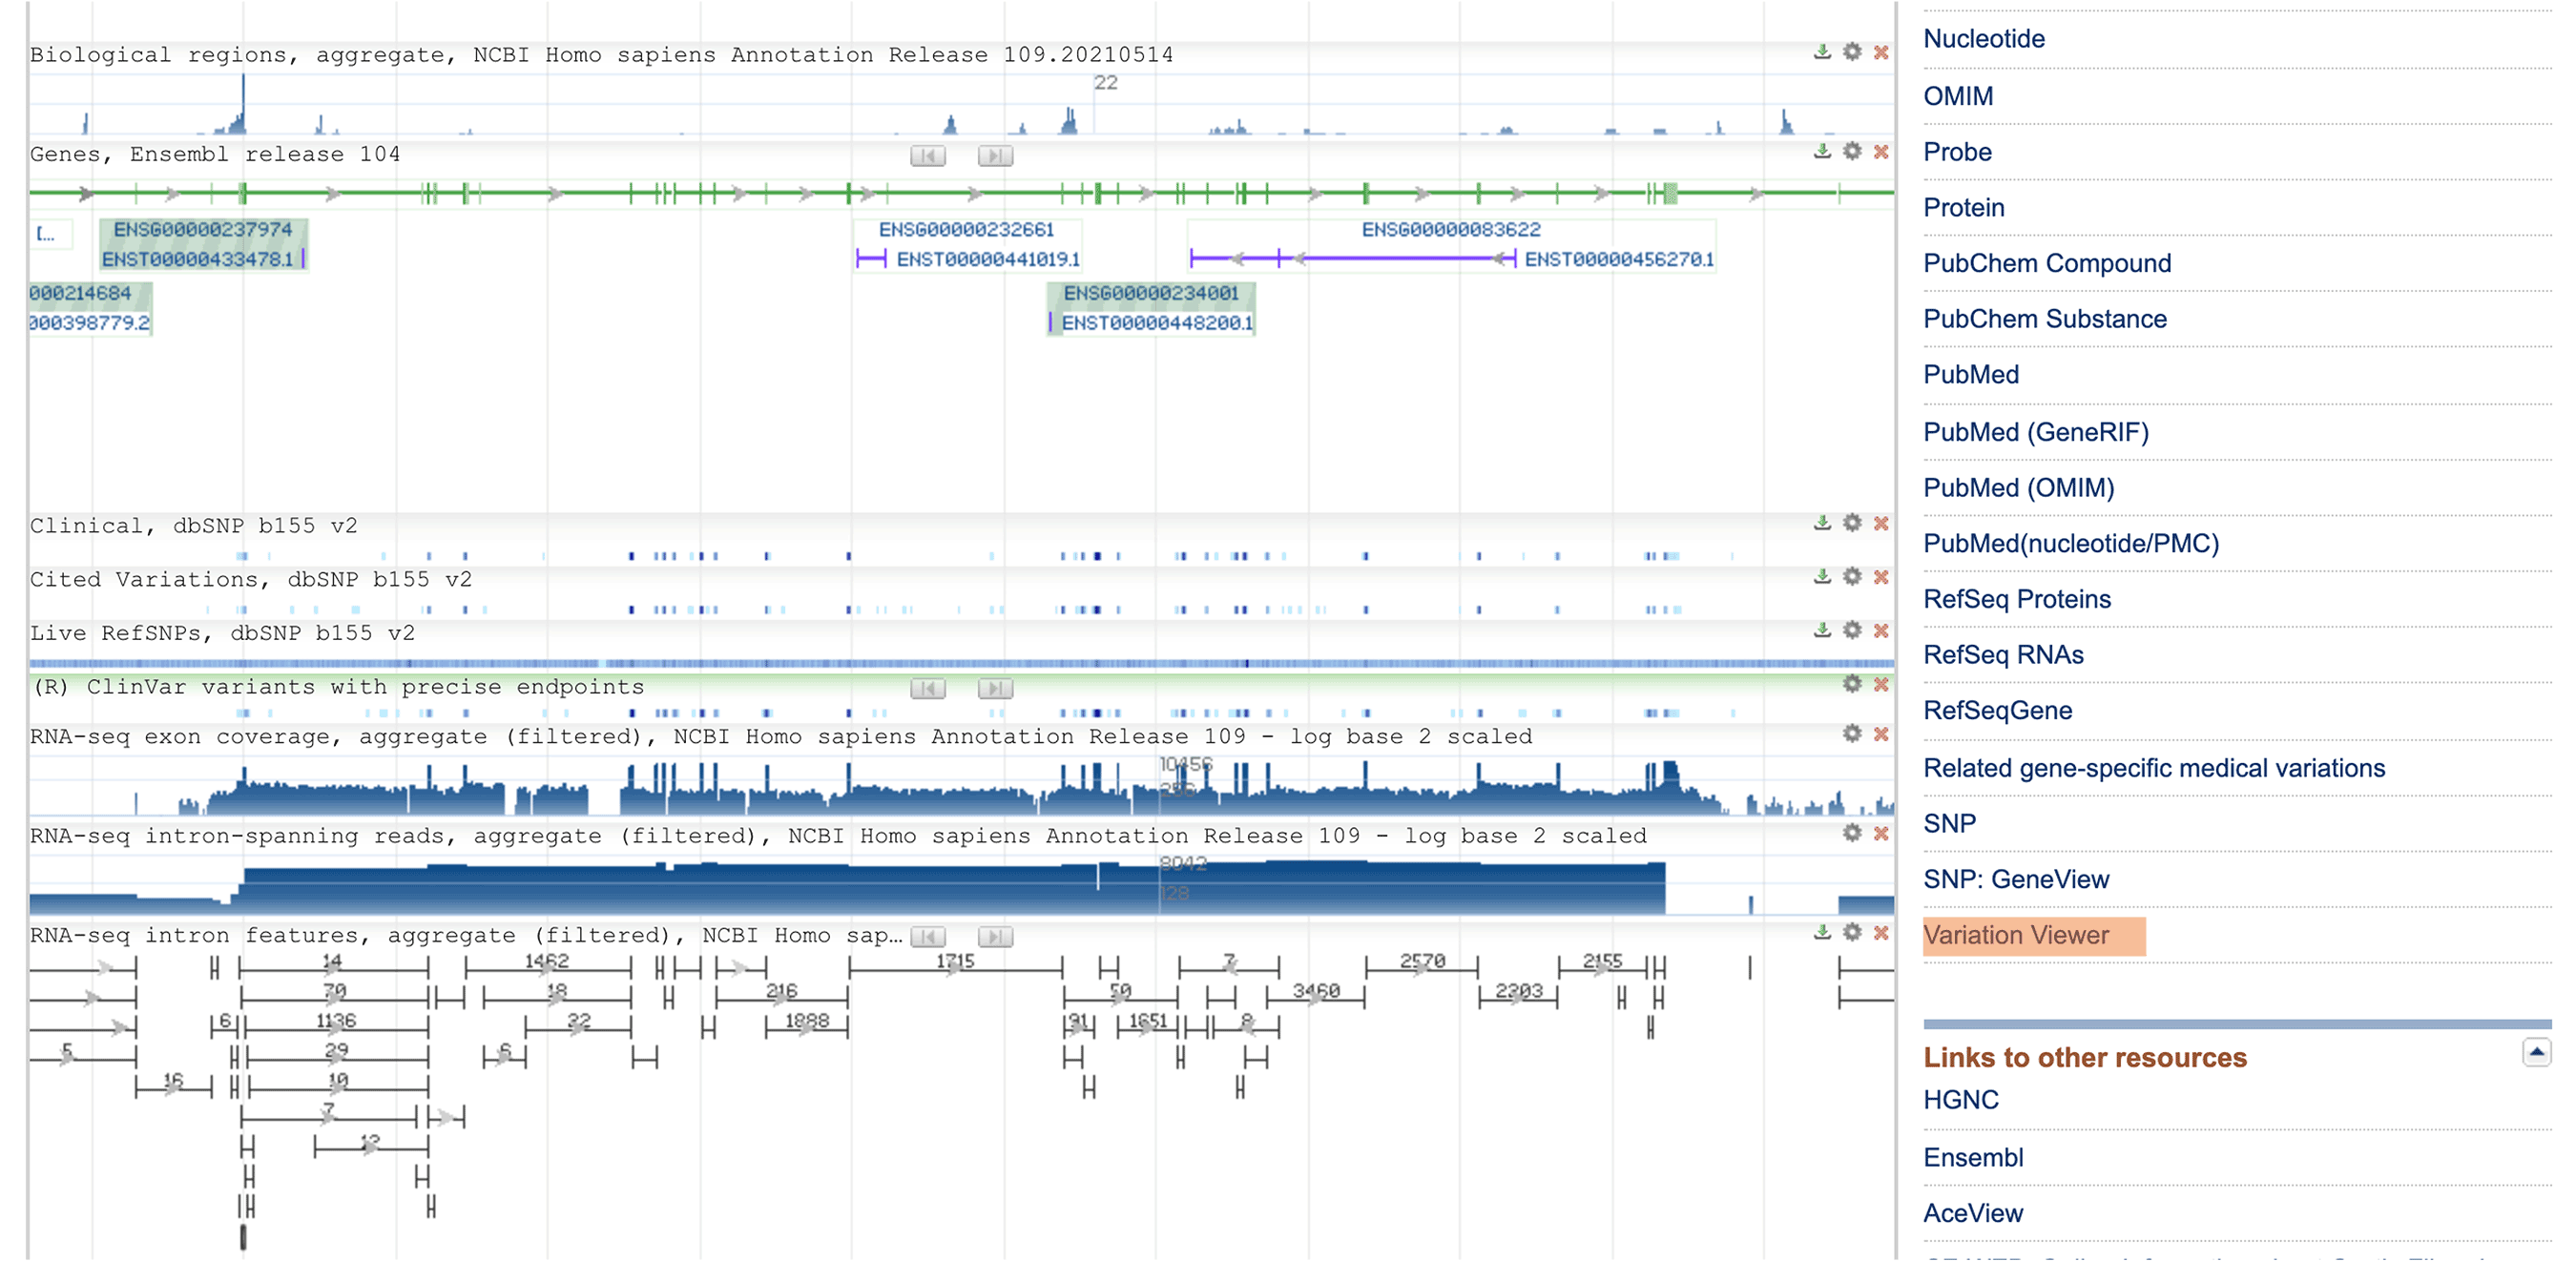 Screenshot of the gene page for CFTR on the OMIM website, showing where the GeneView link is.